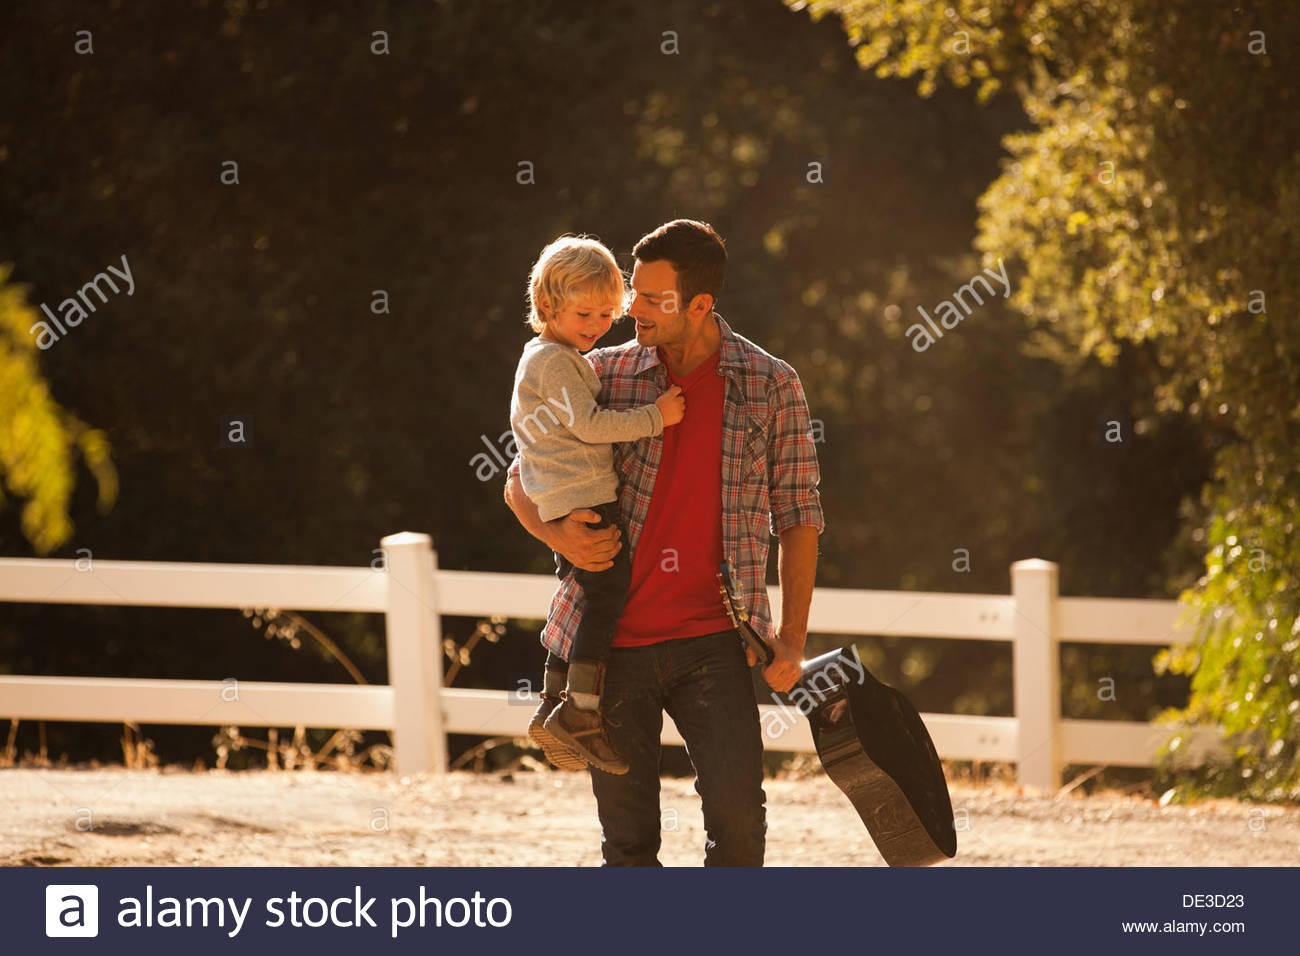 Father carrying son and guitar on dirt road - Stock Image